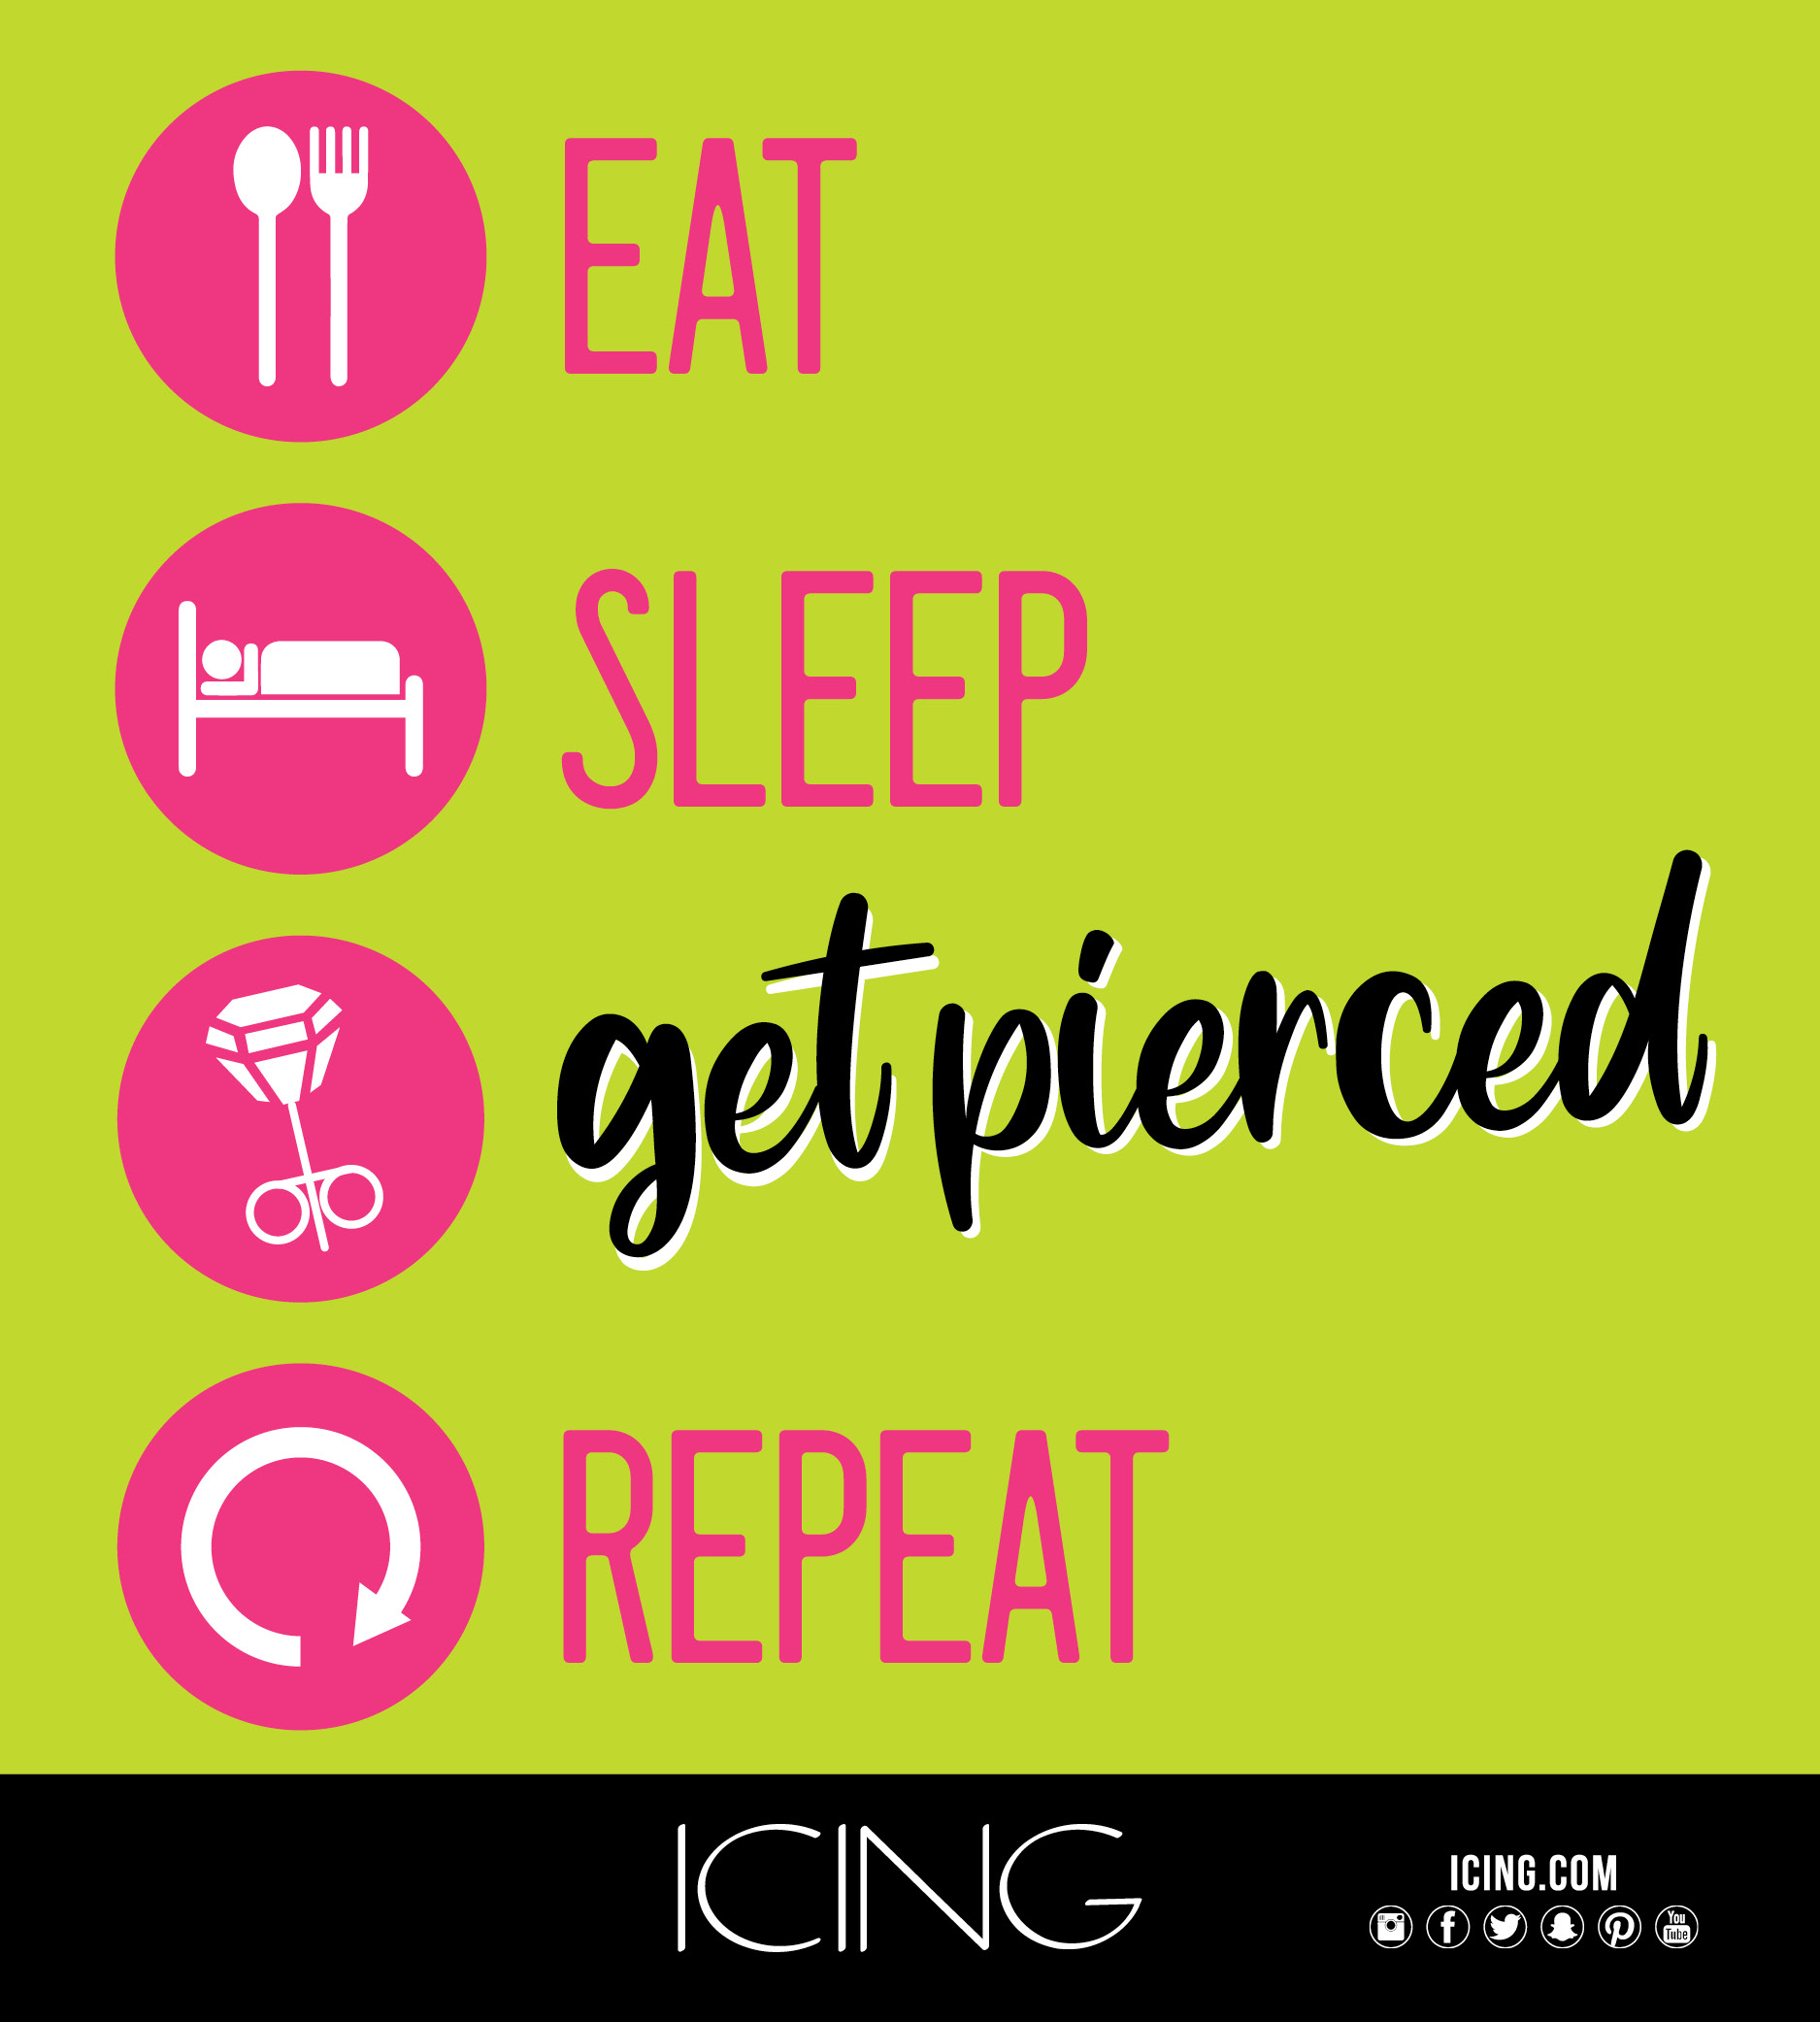 Copy: Eat (image fork and spoon), sleep (image of person laying on bed), get pierced (earring image), repeat (curved arrow image).  Icing.com, instagram logo, facebook logo, twitter logo, snapchat, pinterest logo, youtube logo.